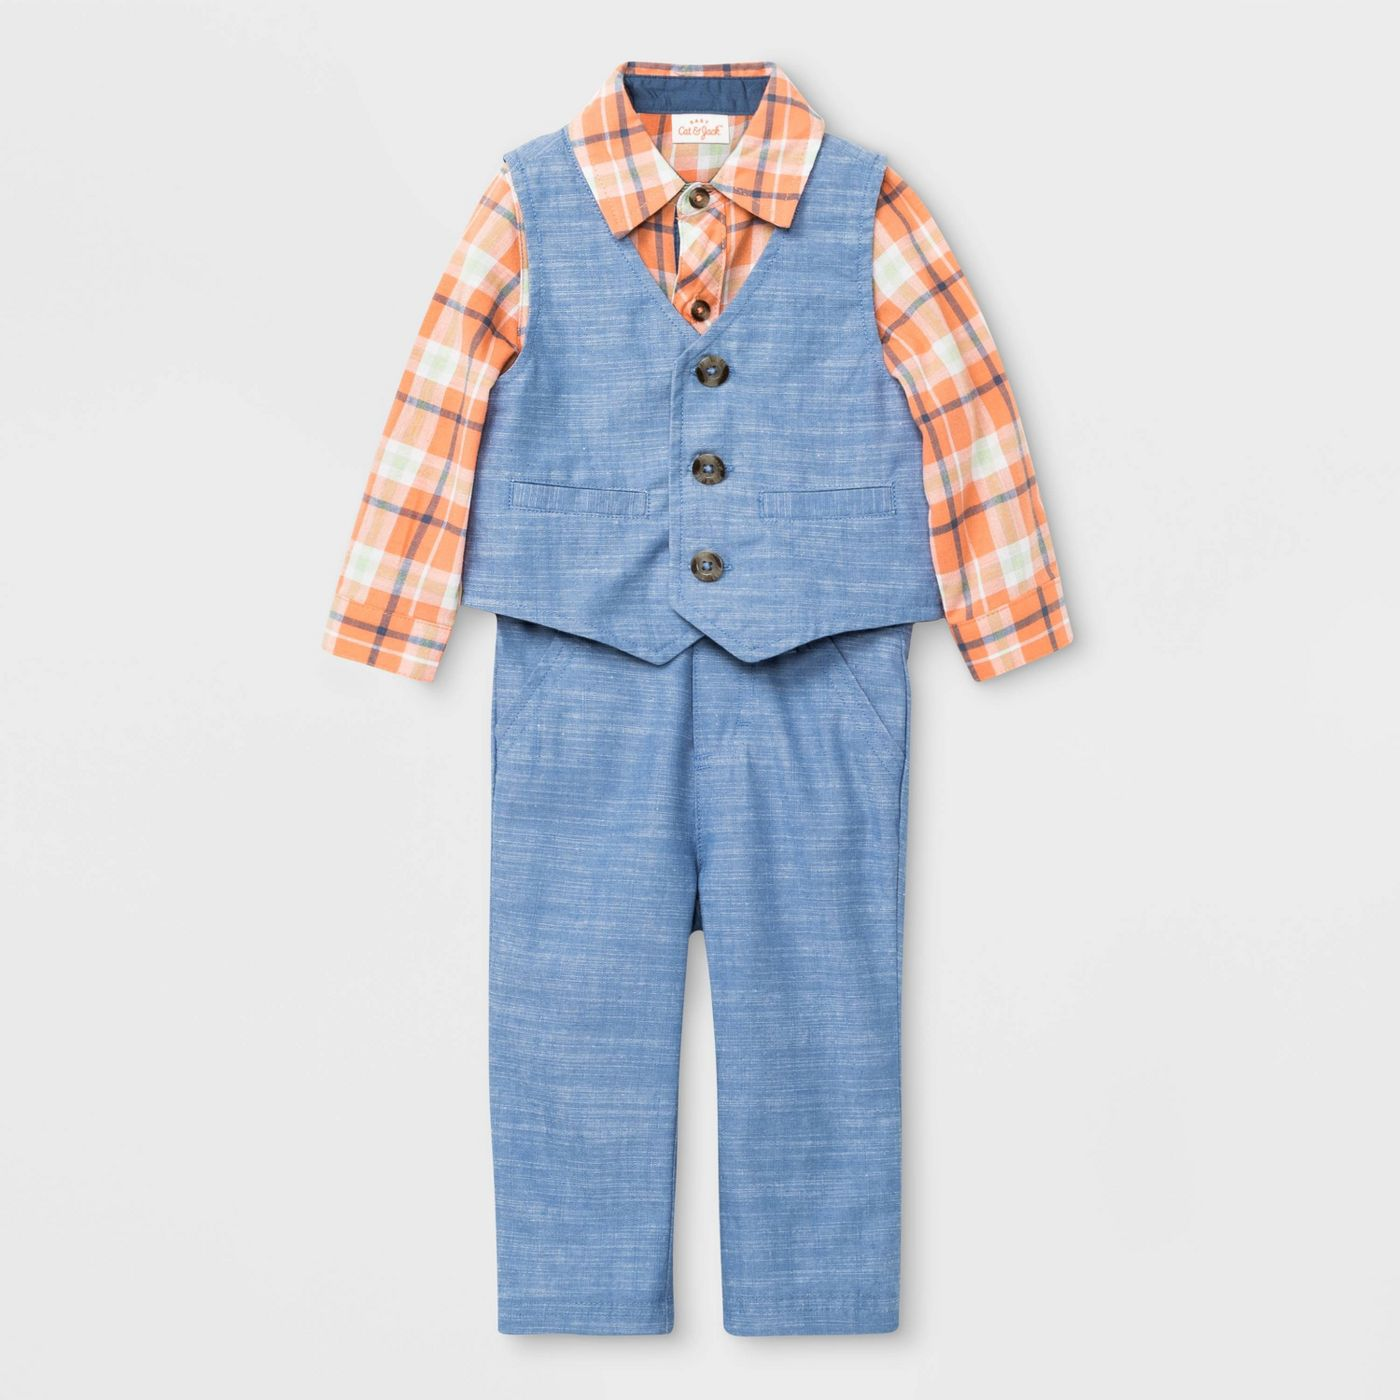 Easter Outfit for Infant Boy